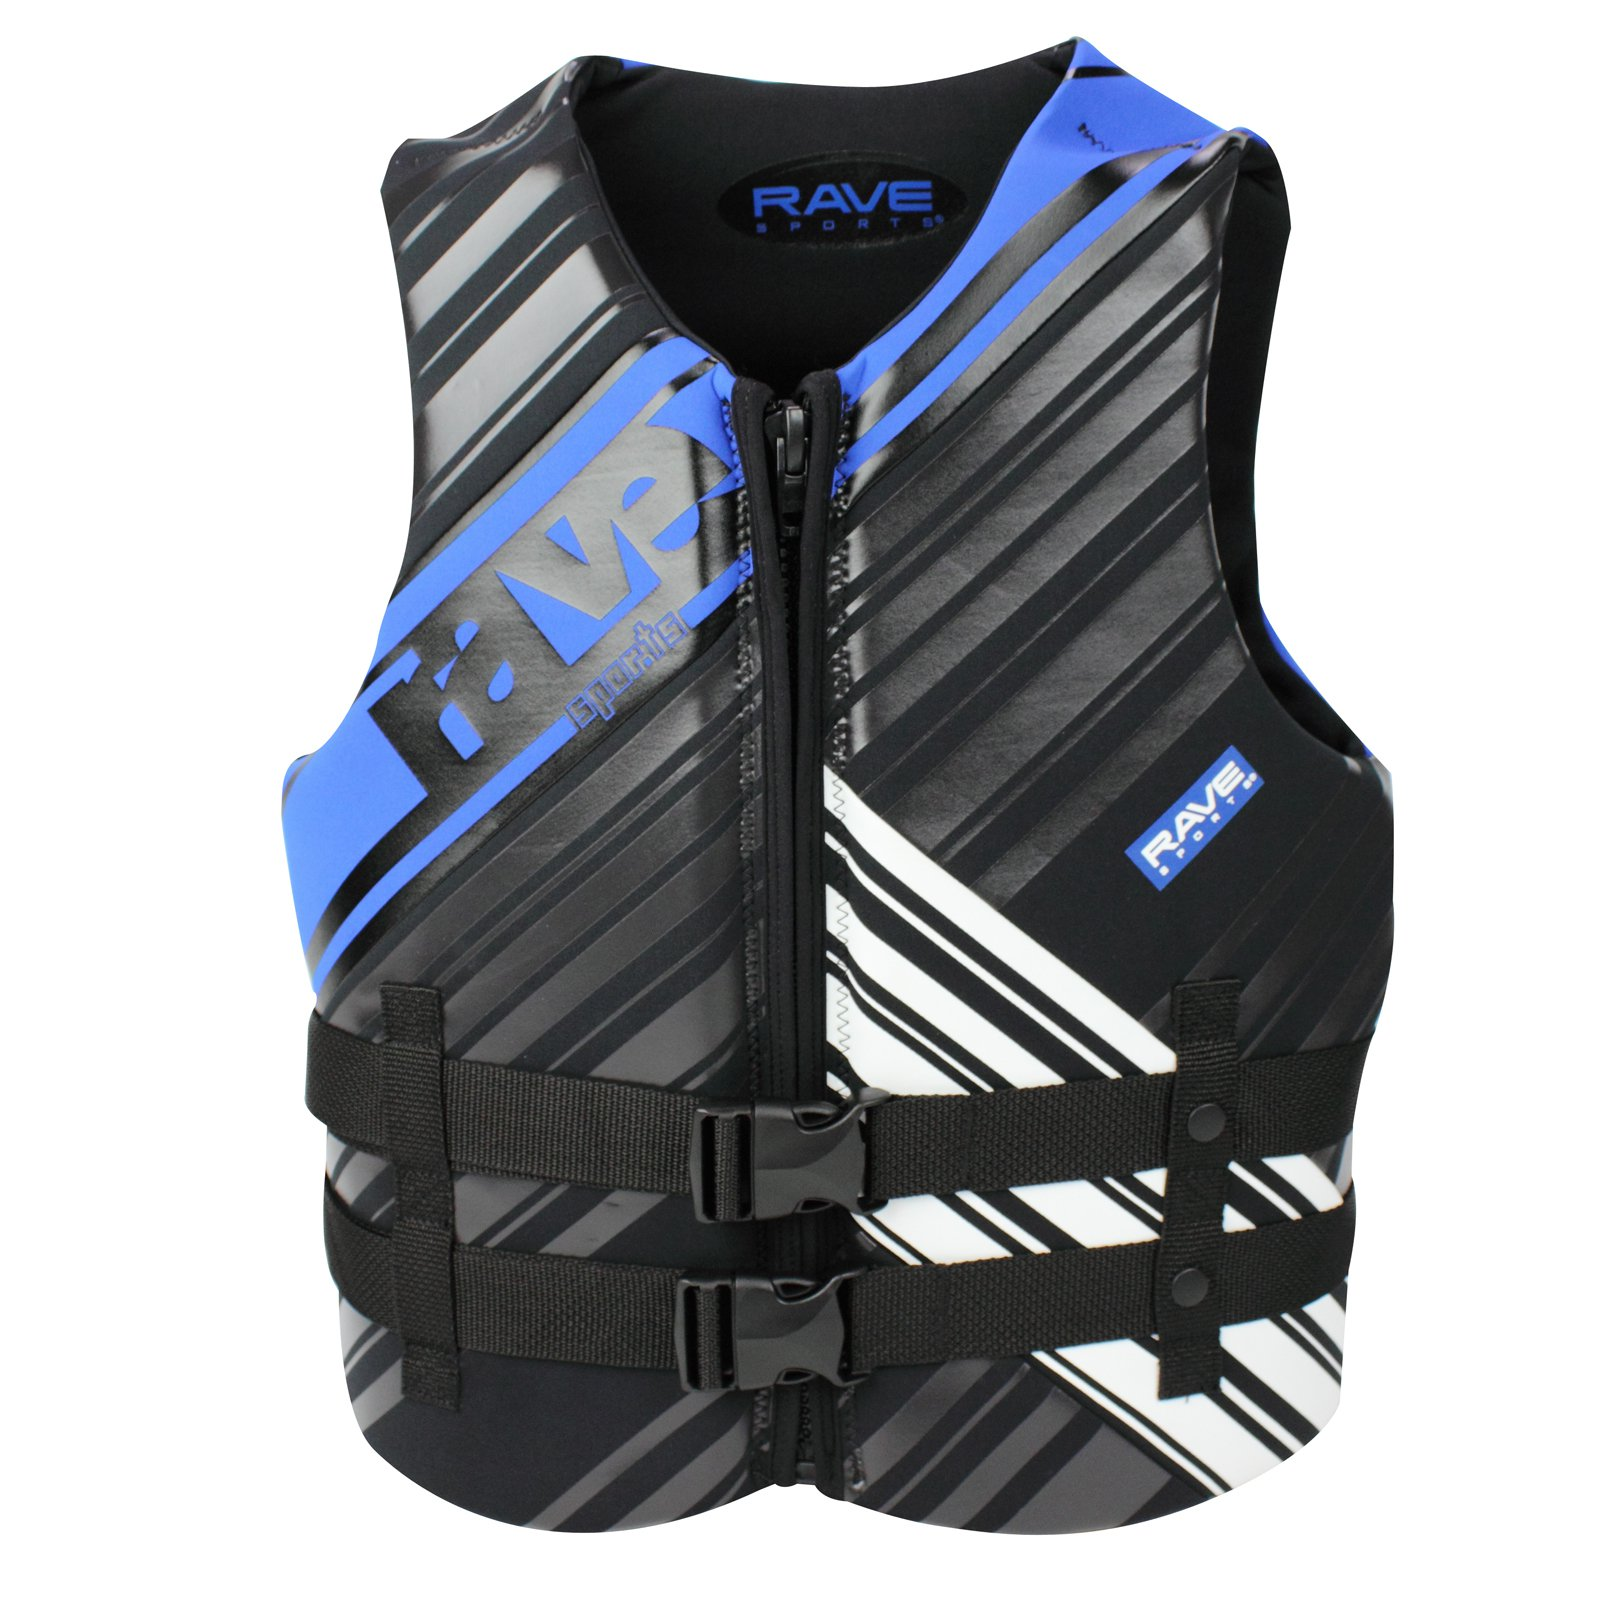 Rave Sport Men's Neo Life Vest, Large, Black by Generic